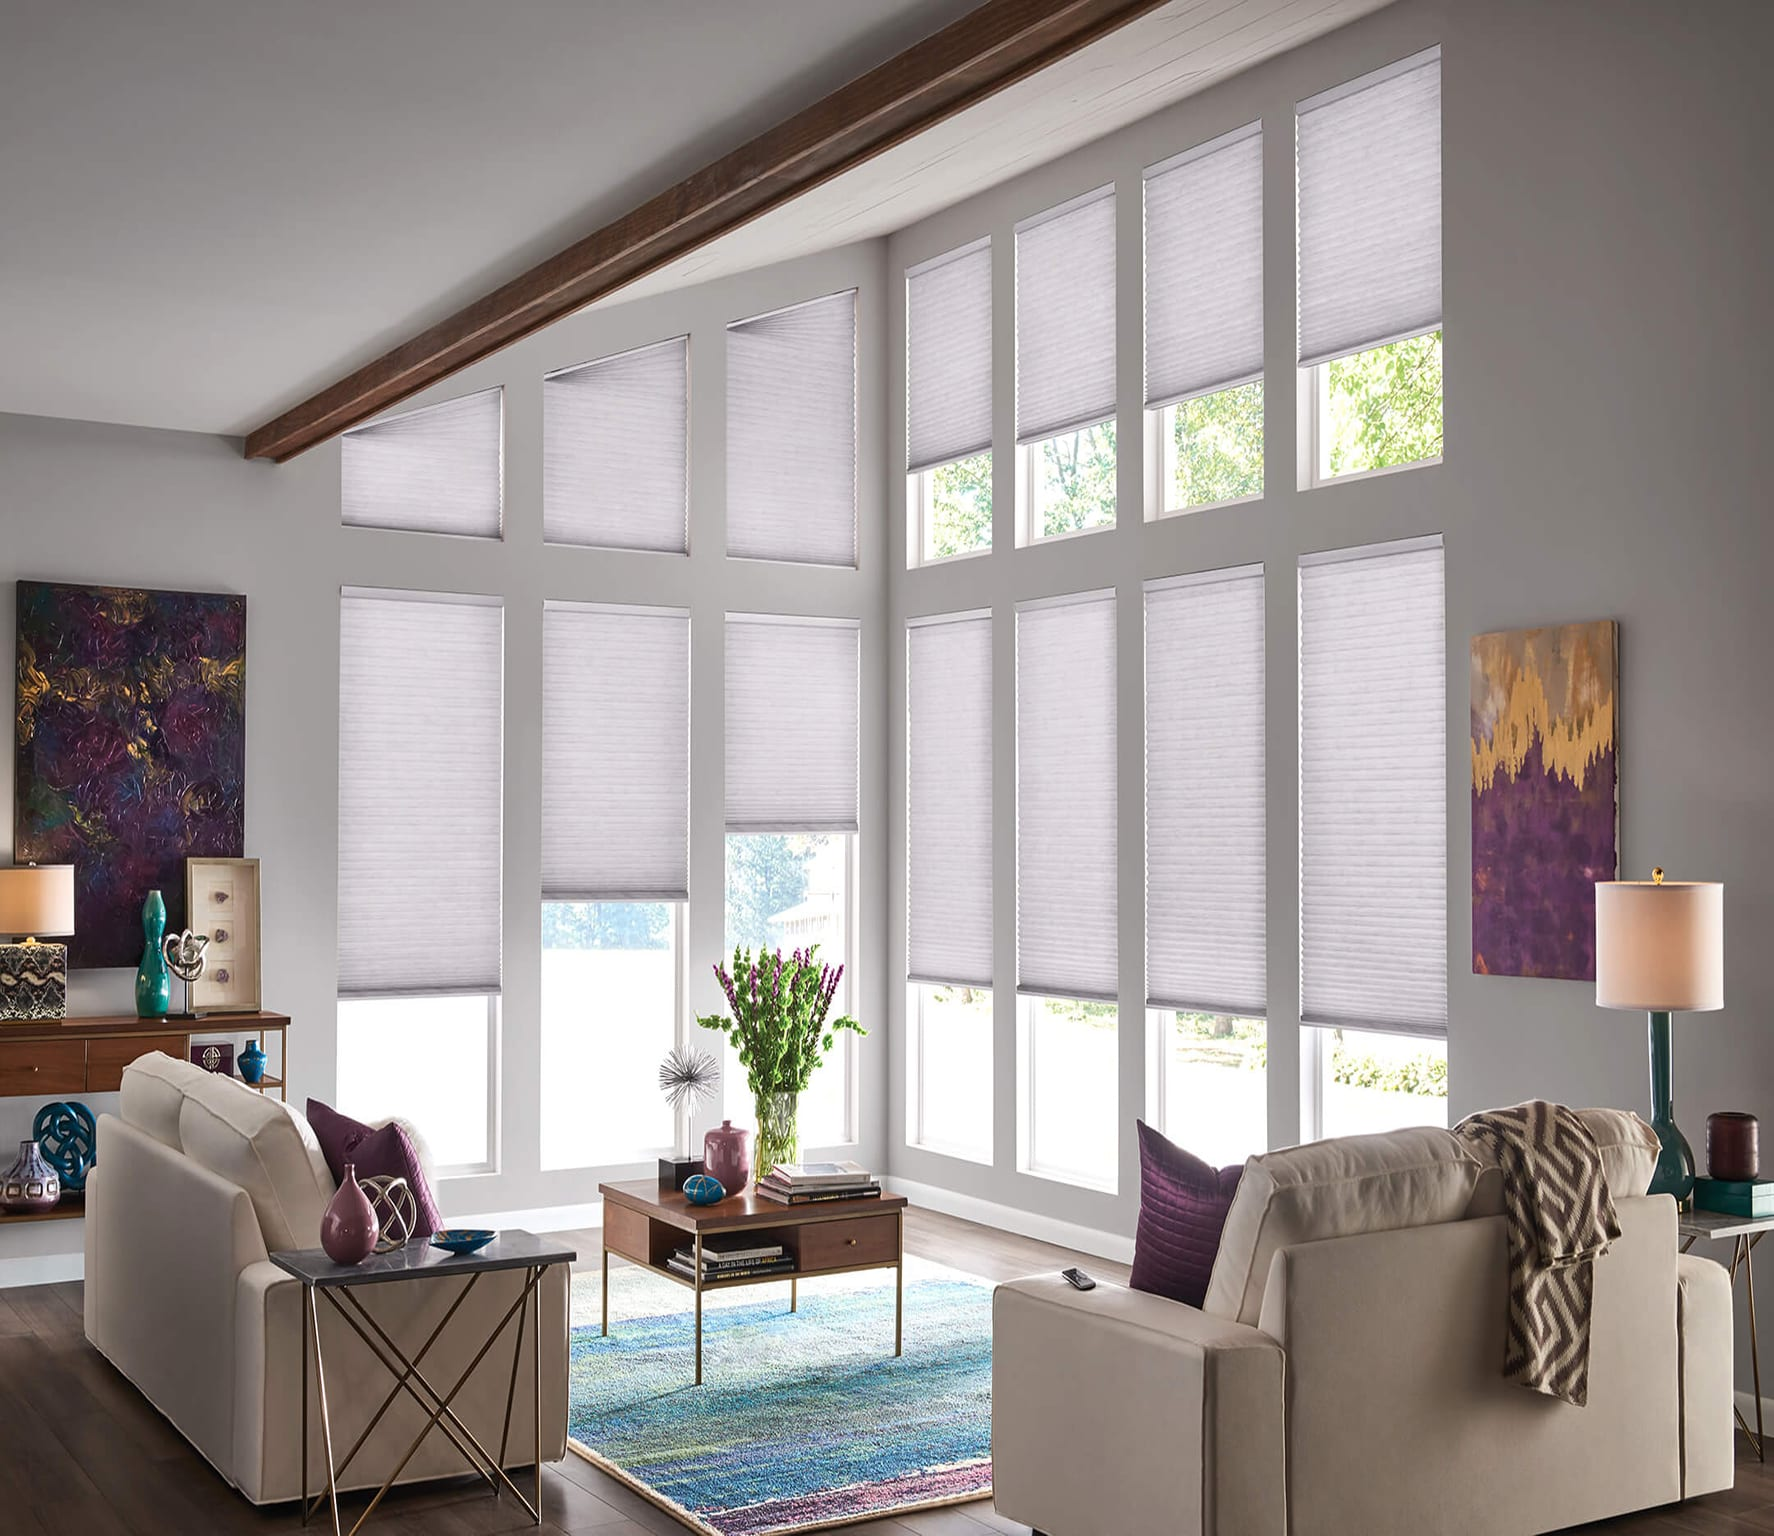 https://urbanwindowtreatments.com/wp-content/uploads/2019/07/2-1774x1536.jpg